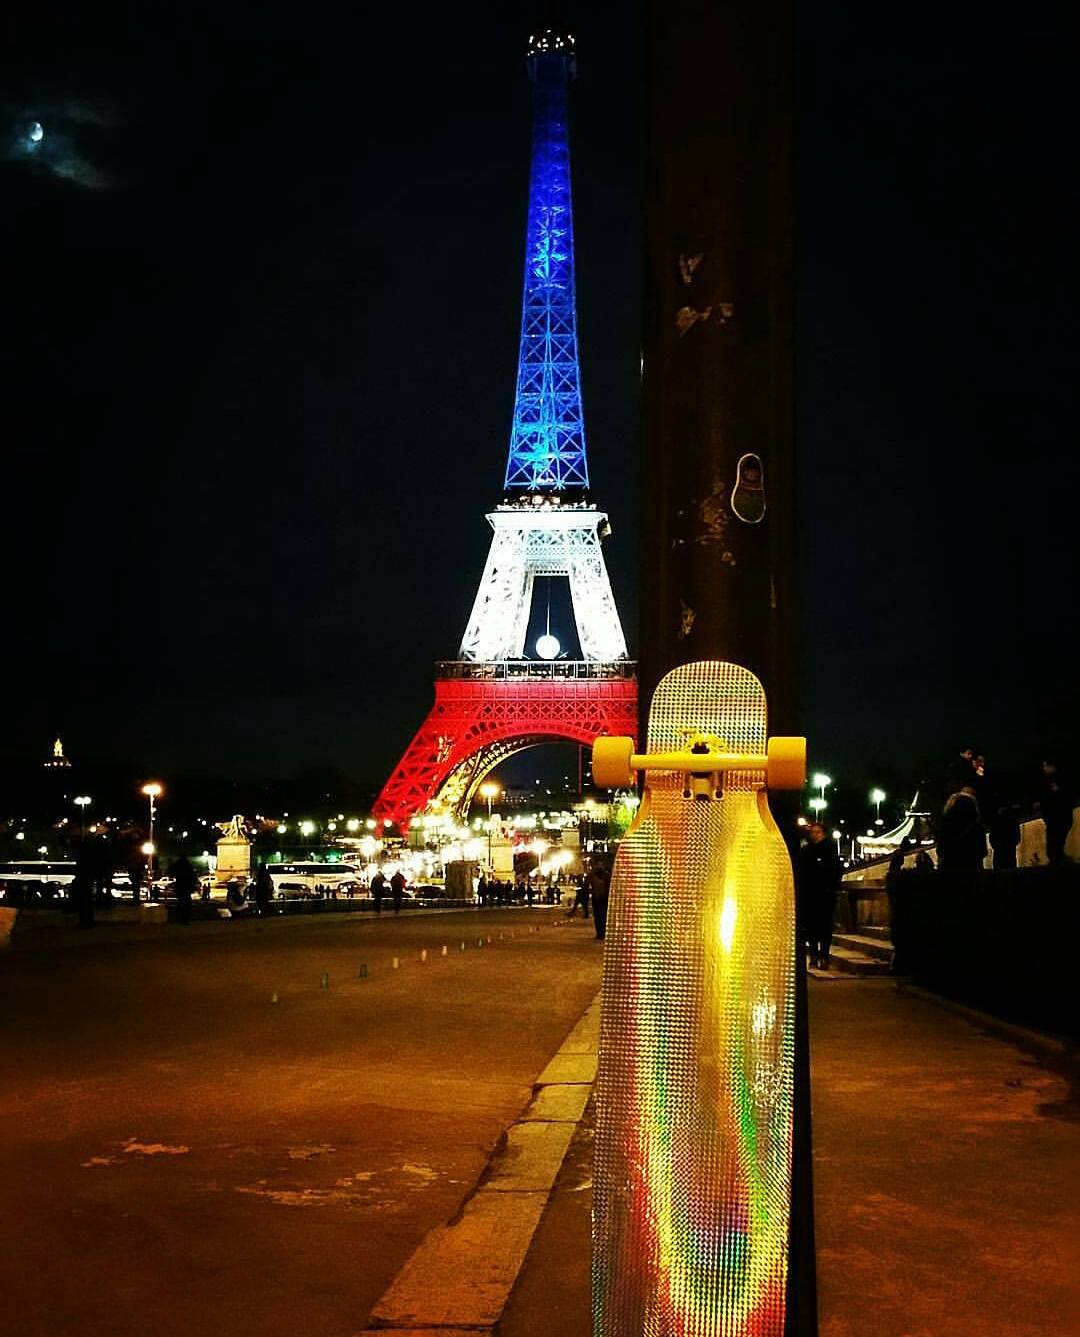 Repost from @parislongboardurbanghost of a dazzling night time shot of the Eiffel Tower getting lit while a 70's Disco Bhangra shows off every color in the book.  #LoadedBoards #DiscoBhangra #EifflTower #Trocadero #Docksessions #parislongboardurbanghost